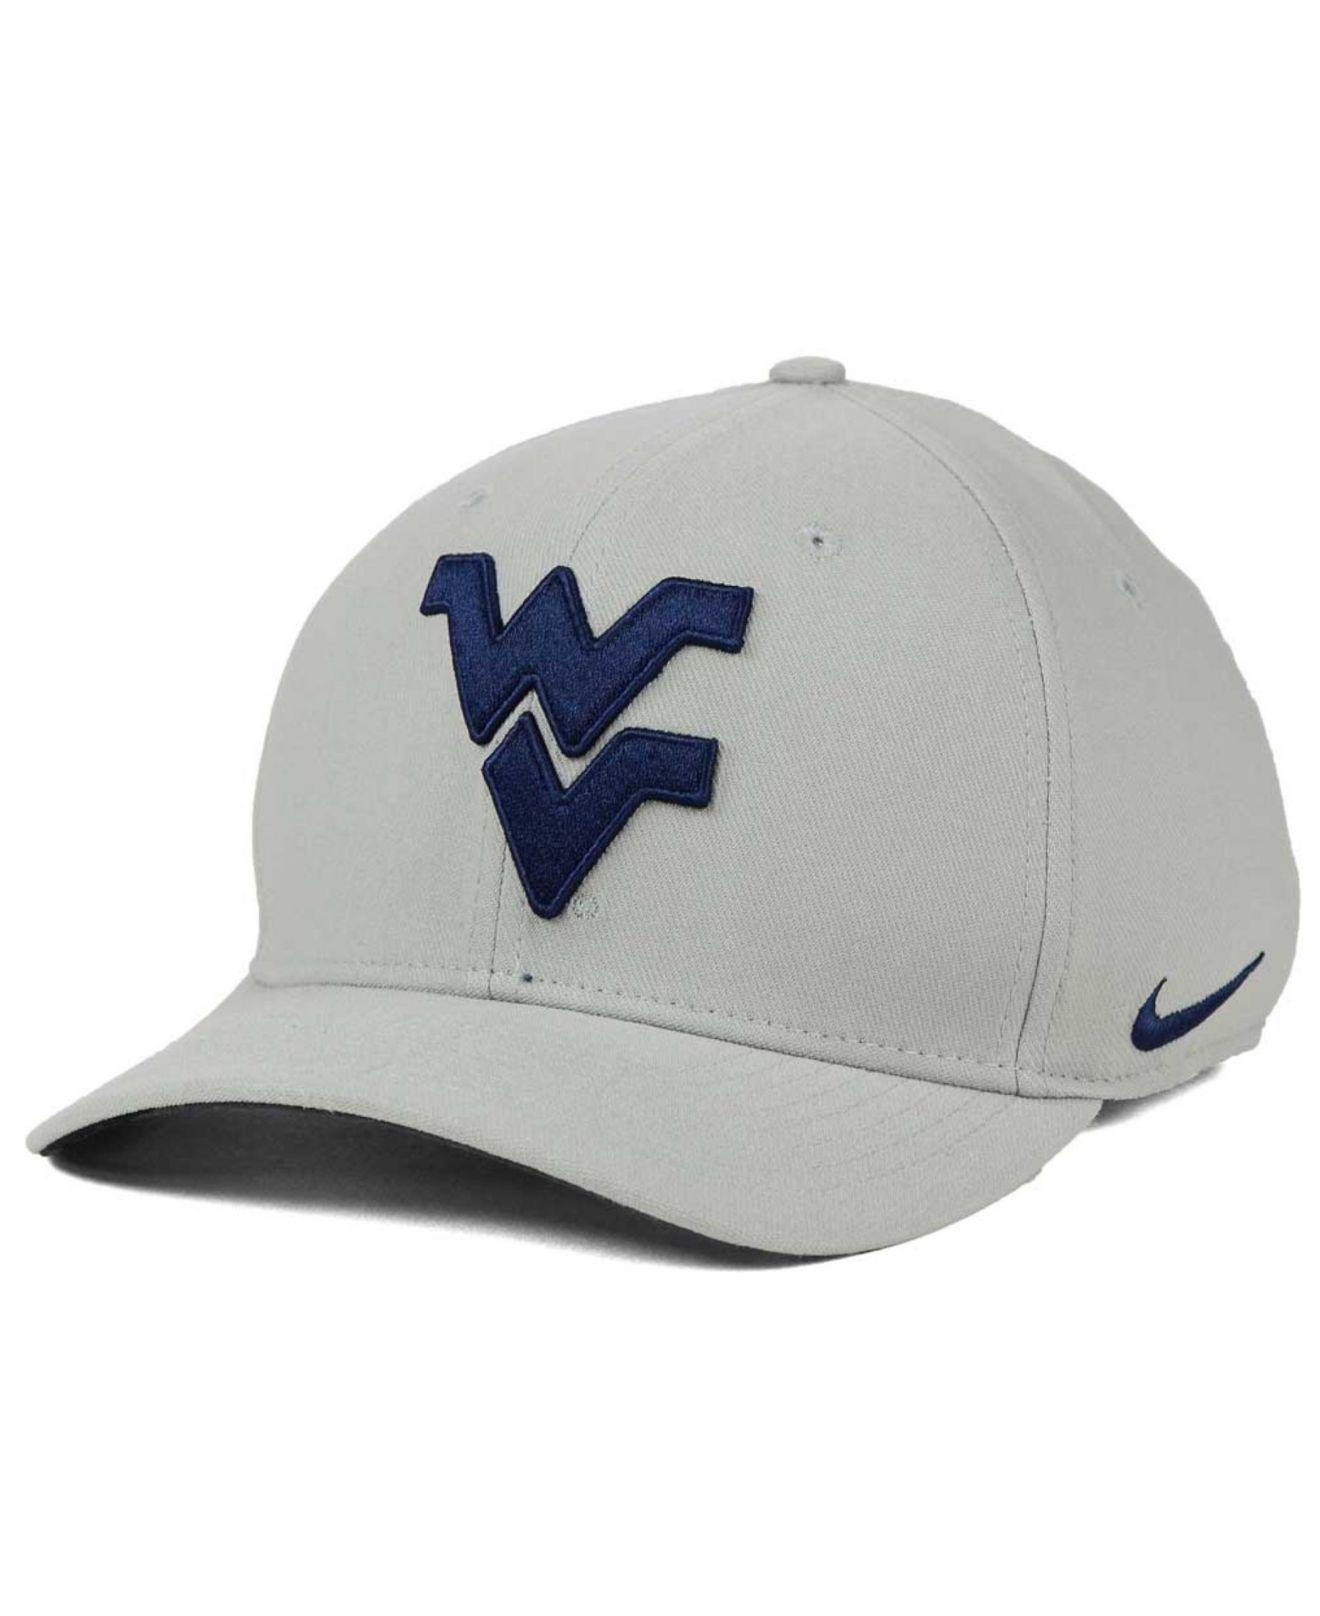 new arrival c977c 647f0 Nike. Men s Gray West Virginia Mountaineers Classic Swoosh Cap